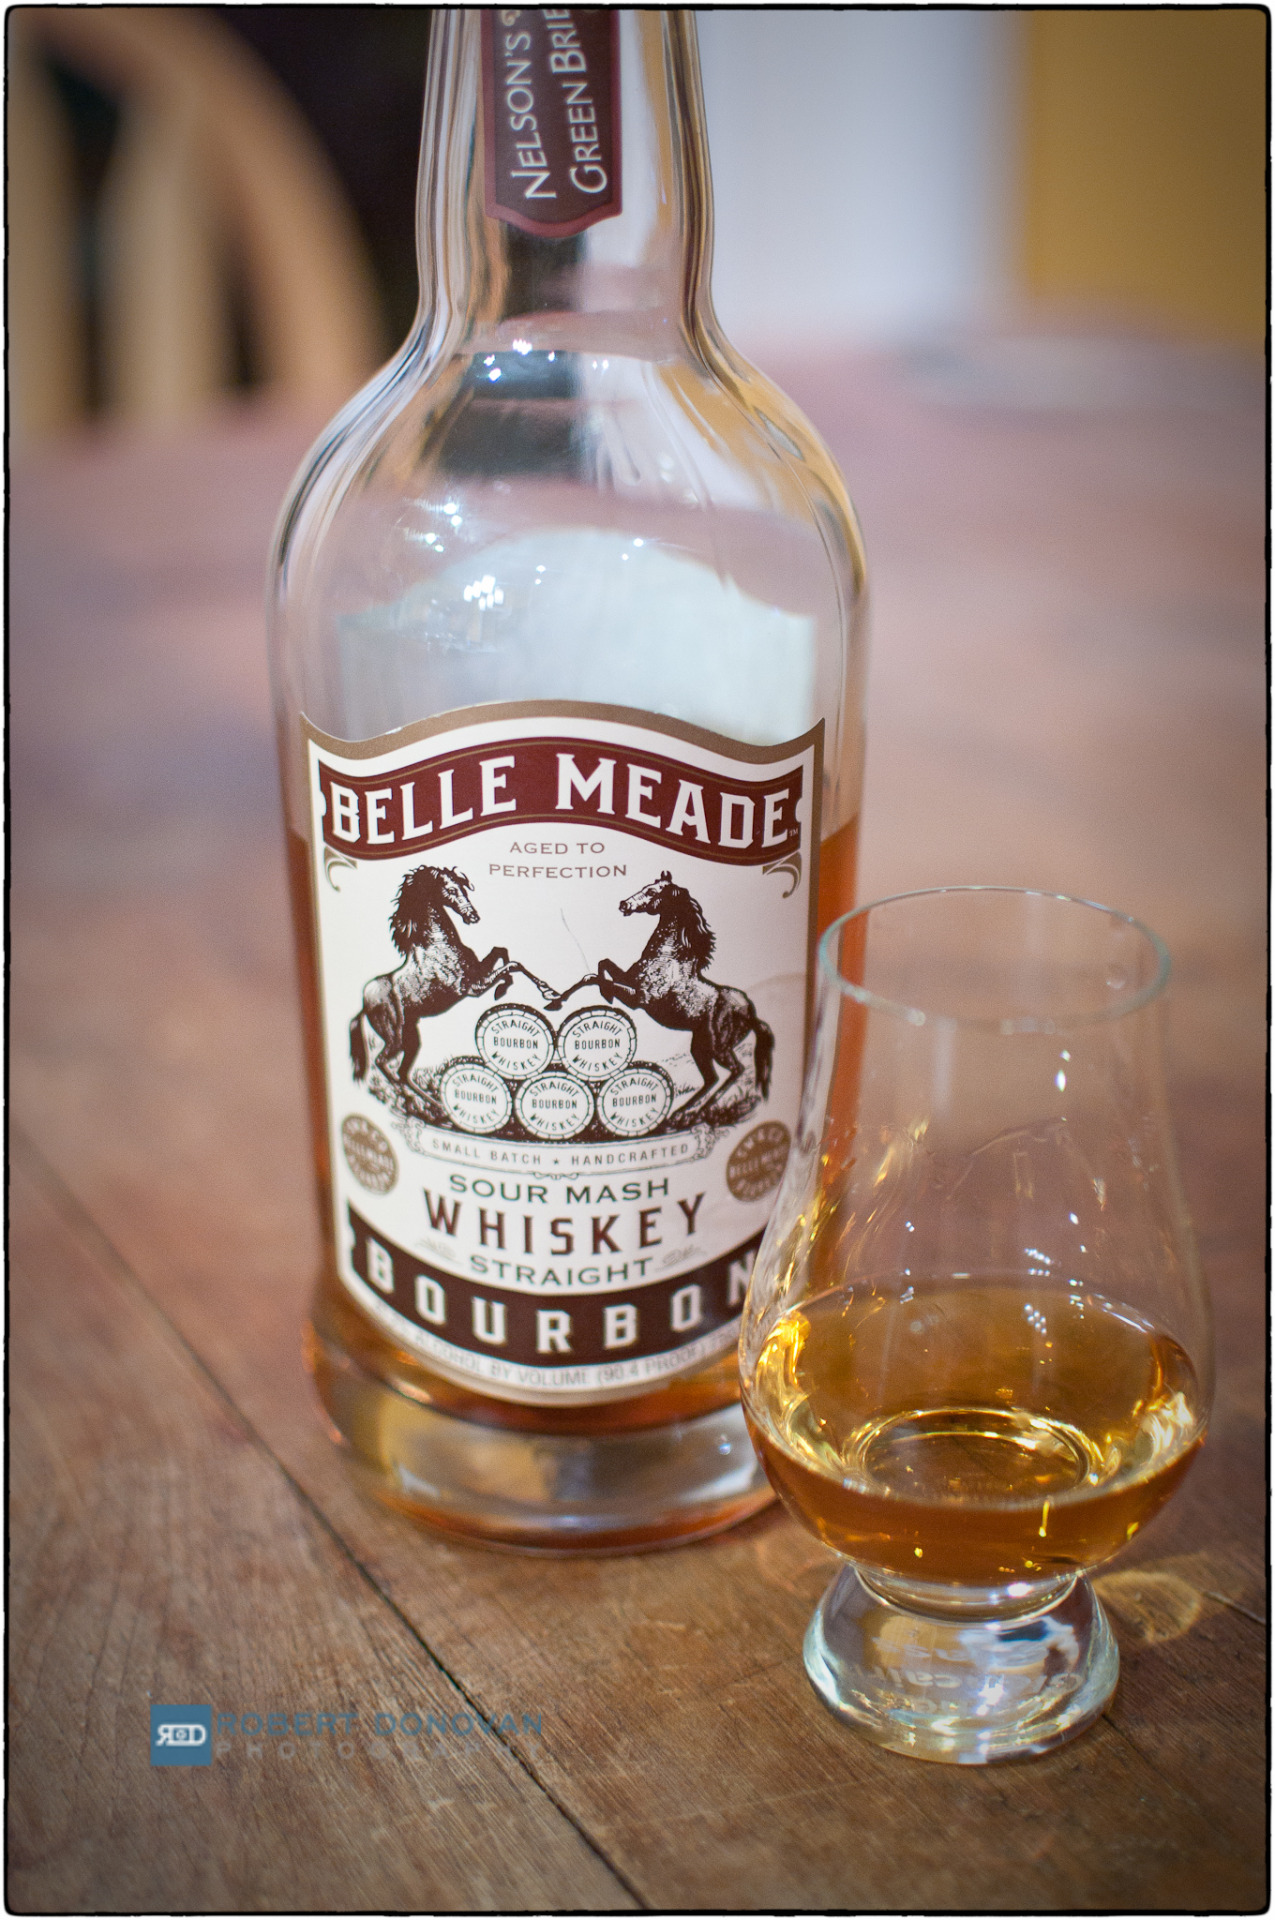 Tennessee's Whiskey Revival with Belle Meade Bourbon This is a great time to be an American whiskey drinker and while Kentucky tends to steal the spotlight for bourbon, they are by no means the only state producing high quality whiskey. { photo via: Robert Donovan Photography }